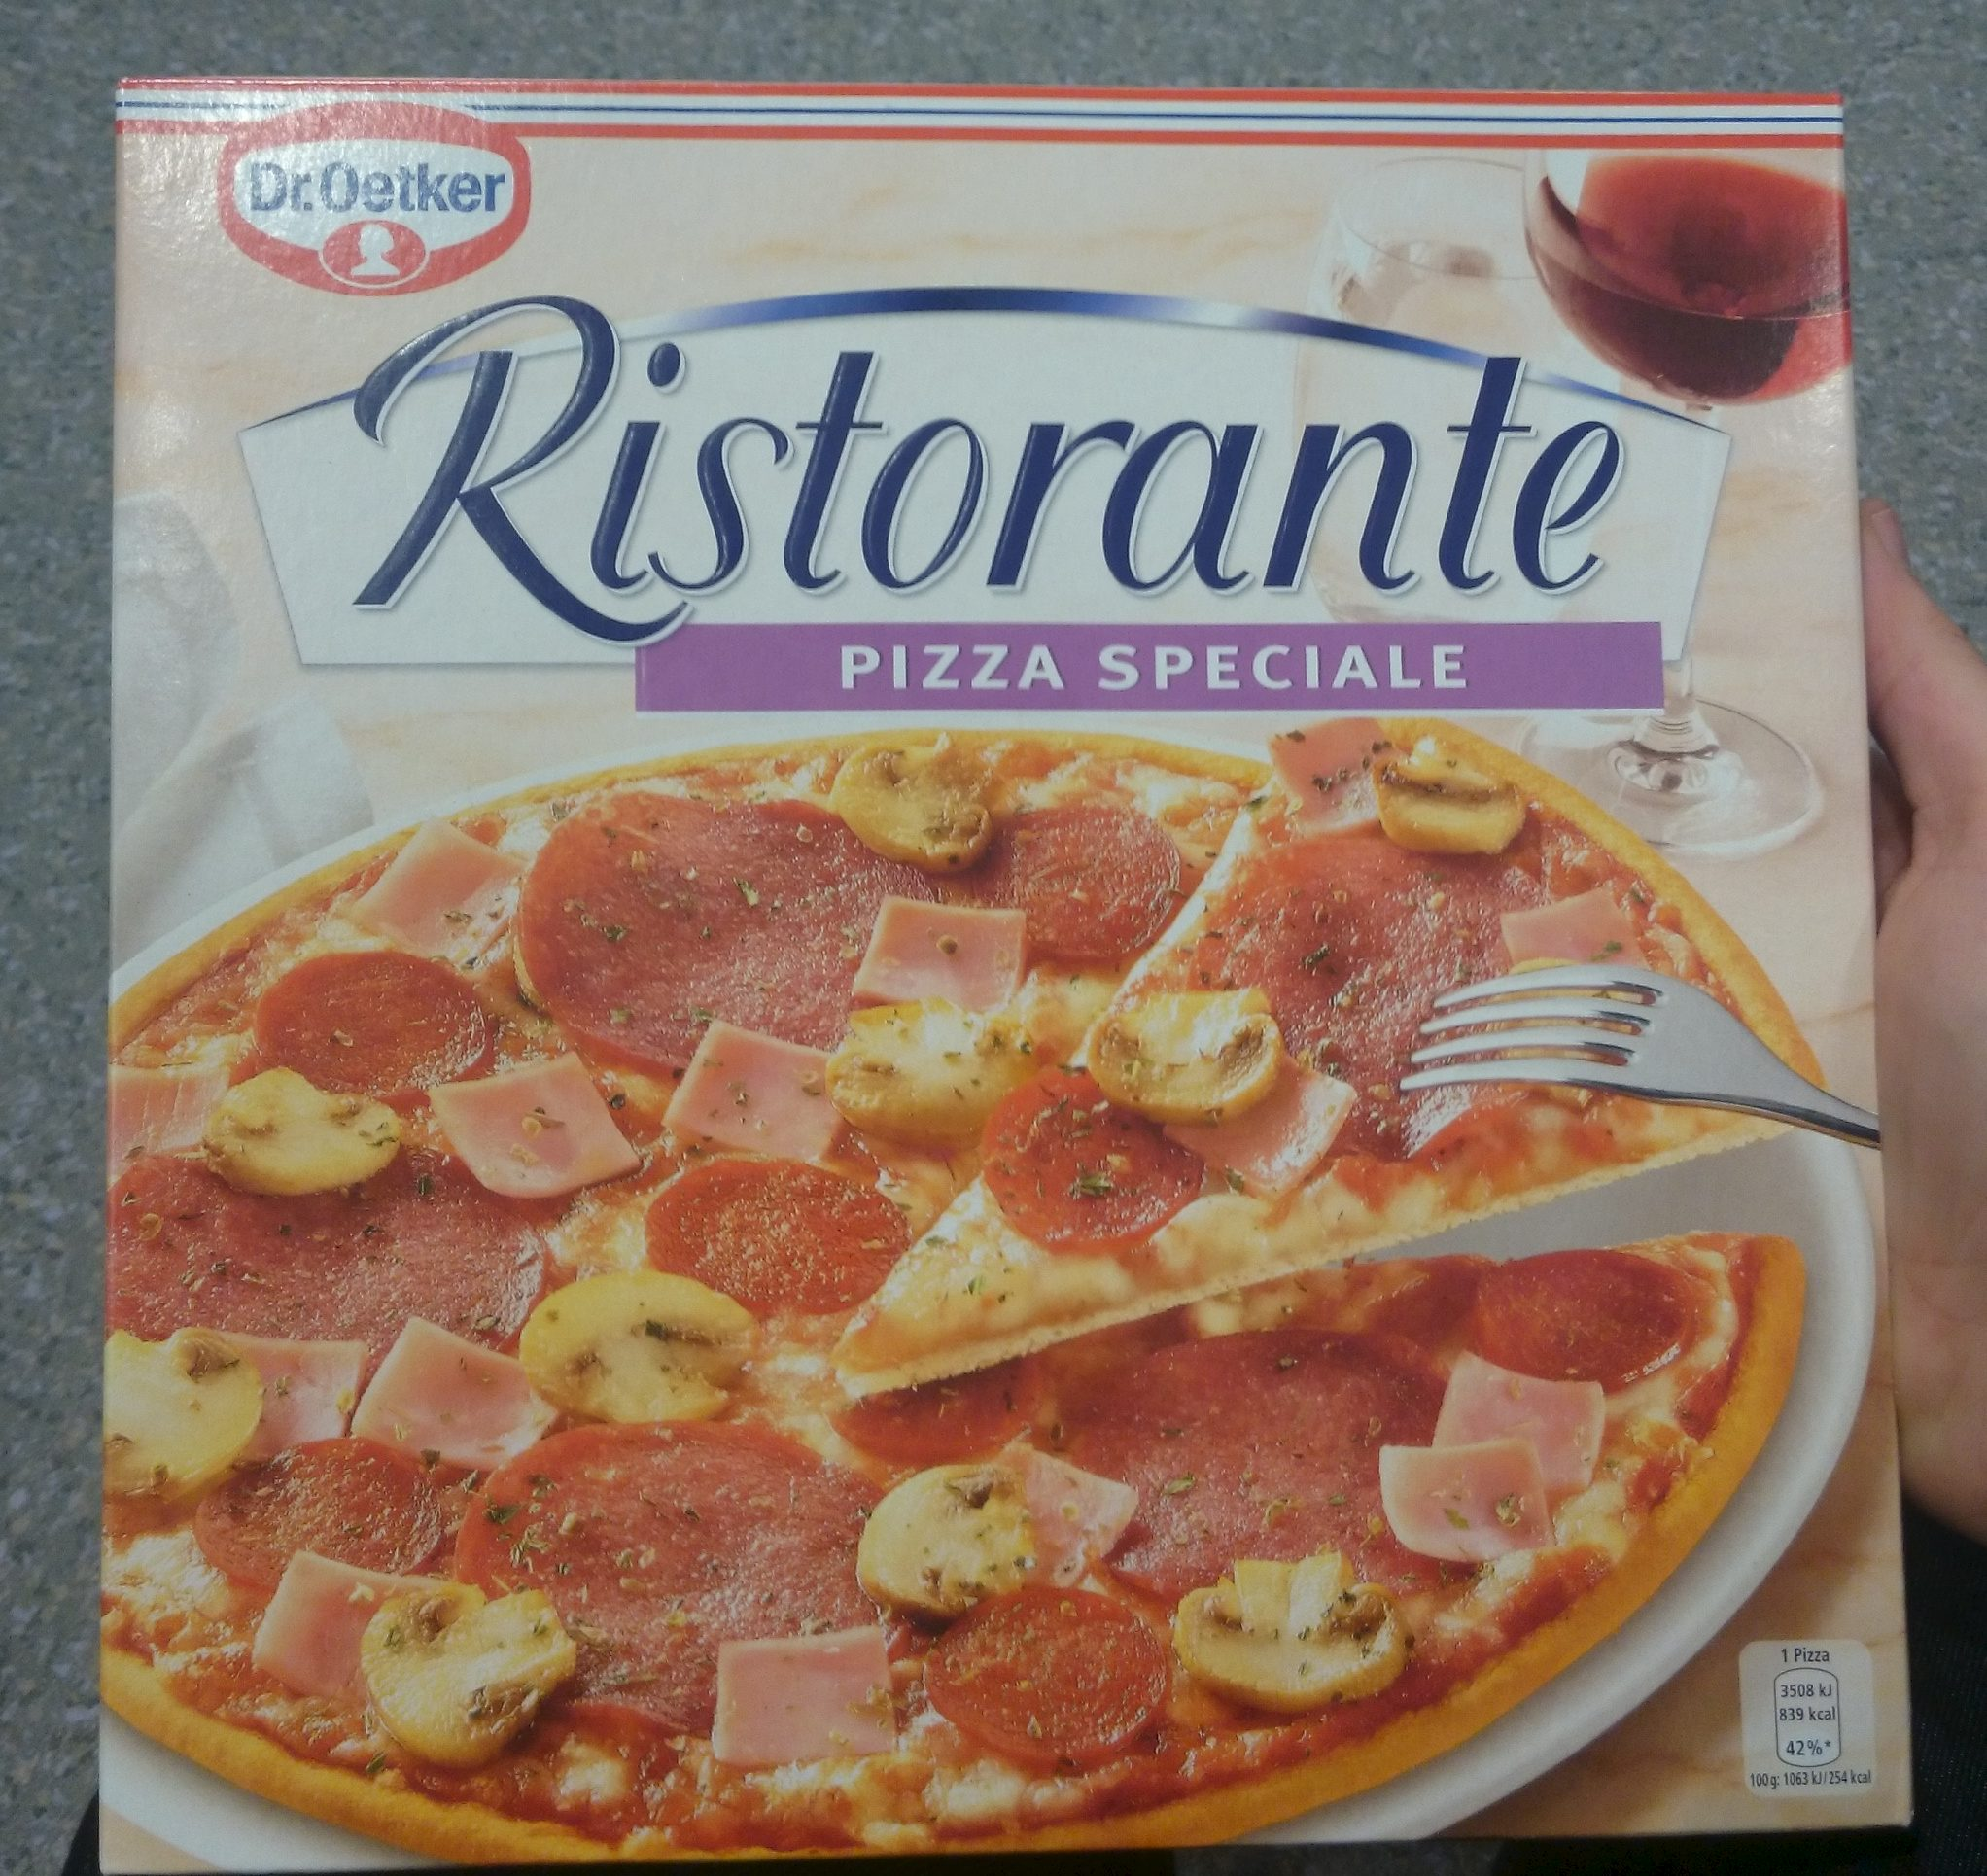 Dr. Oetker Ristorante Pizza Speciale - Product - fr